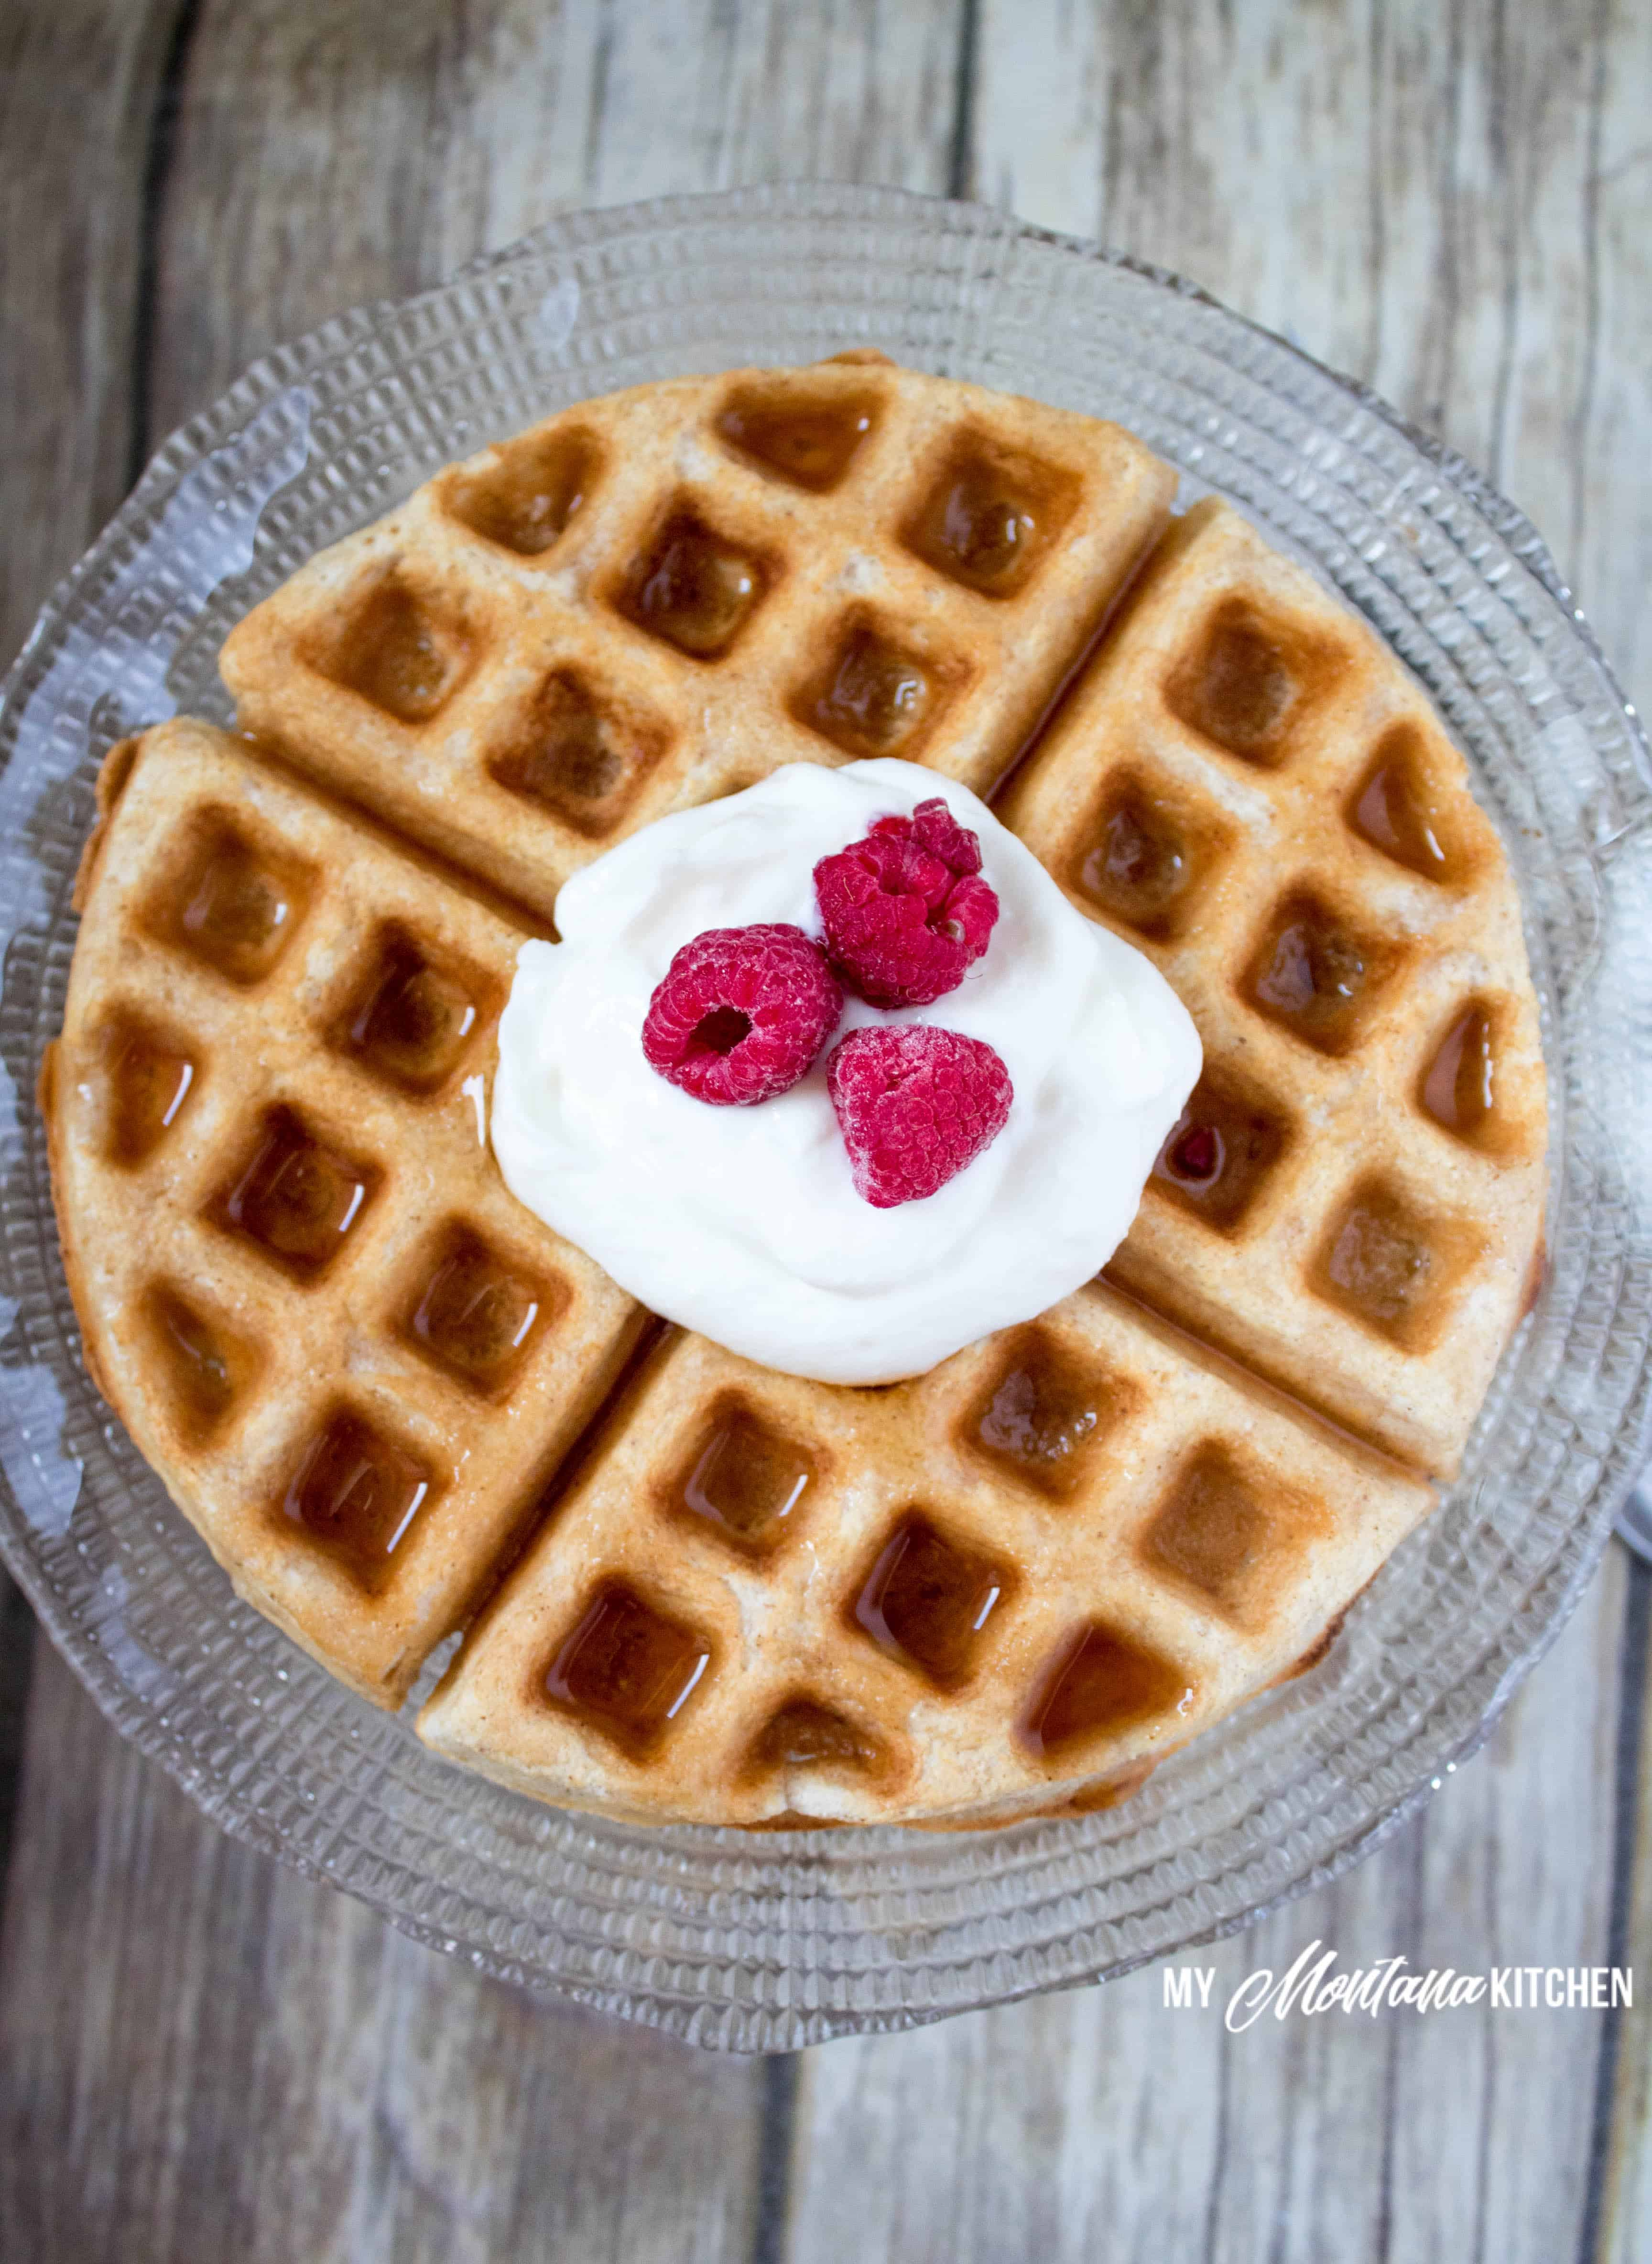 Low Carb Fuel Pull Waffle Recipe (THM-FP, Gluten Free) #trimhealthymama #thm #fp #fuelpull #thmfp #waffle #glutenfree #dairyfree #lowcarb #highfiber #mymontanakitchen